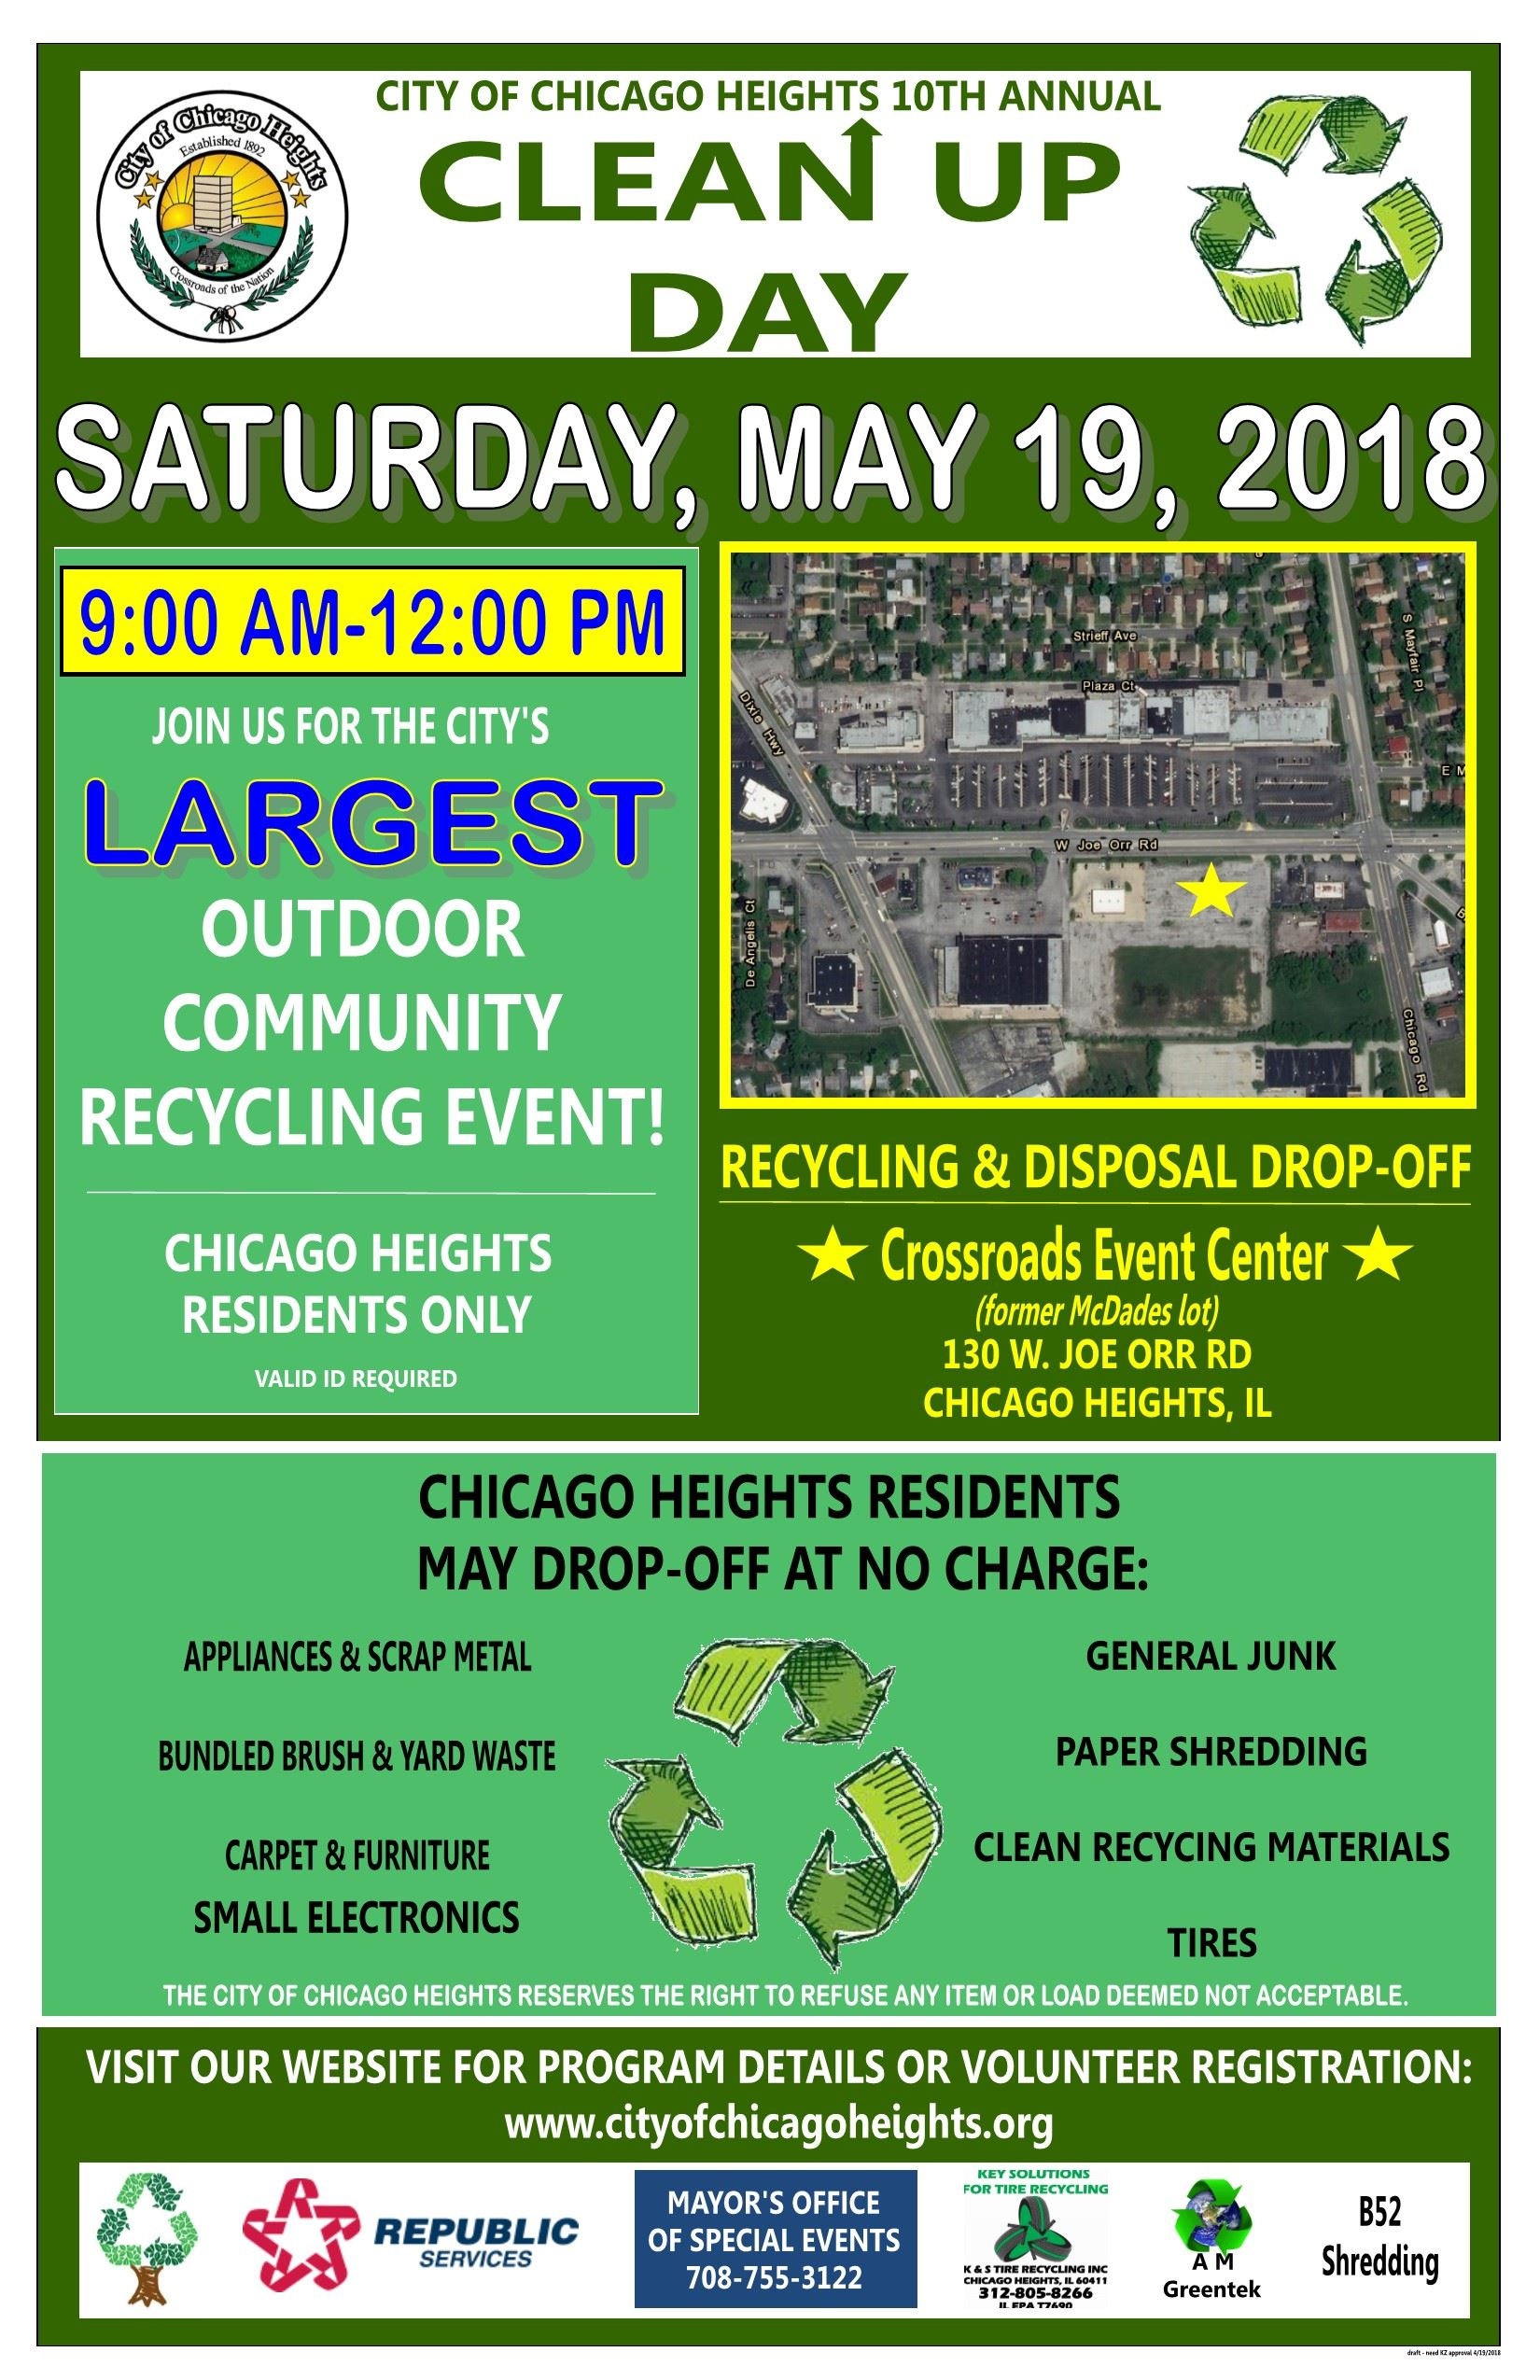 2018 Clean Up Day Poster